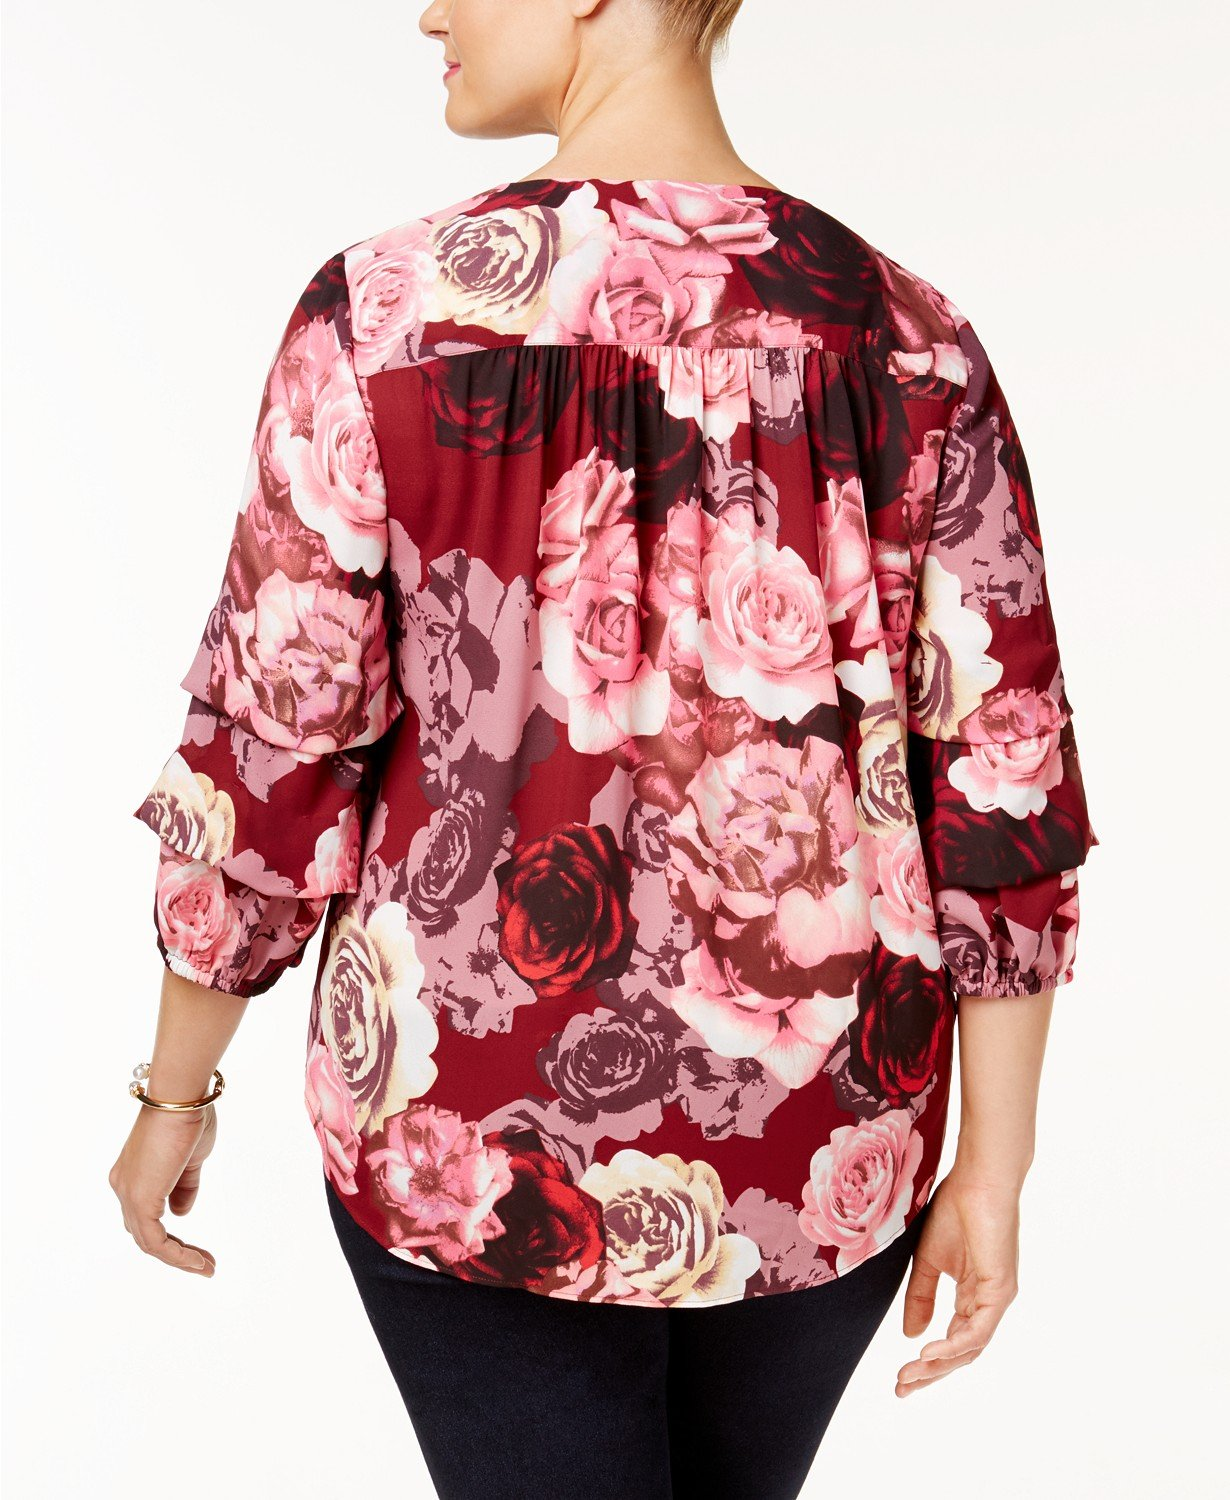 ec2a3dc0fb25c INC International Concepts Red Pink Floral Roses Blouson Sleeve 1X ...